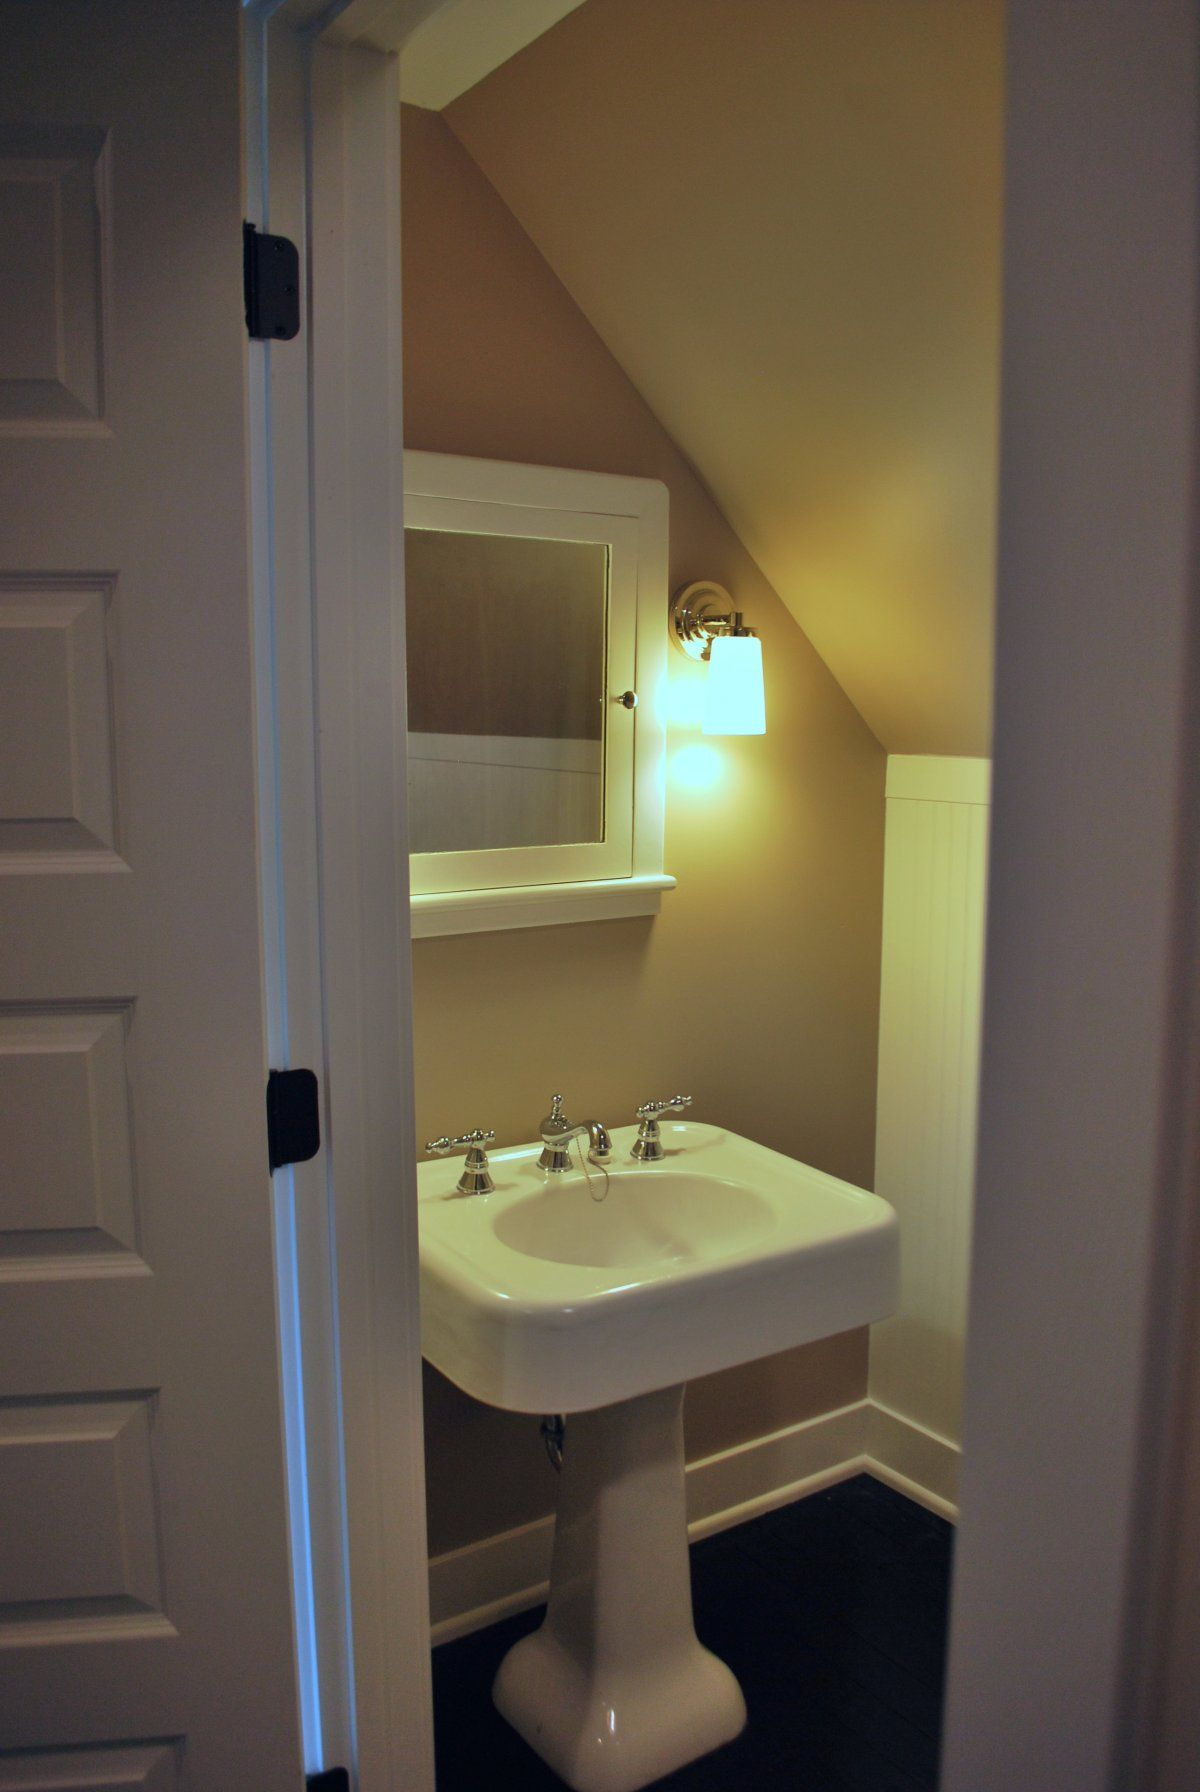 Bedroom Small Attic Bathroom Design With Wall Mounted Lamps